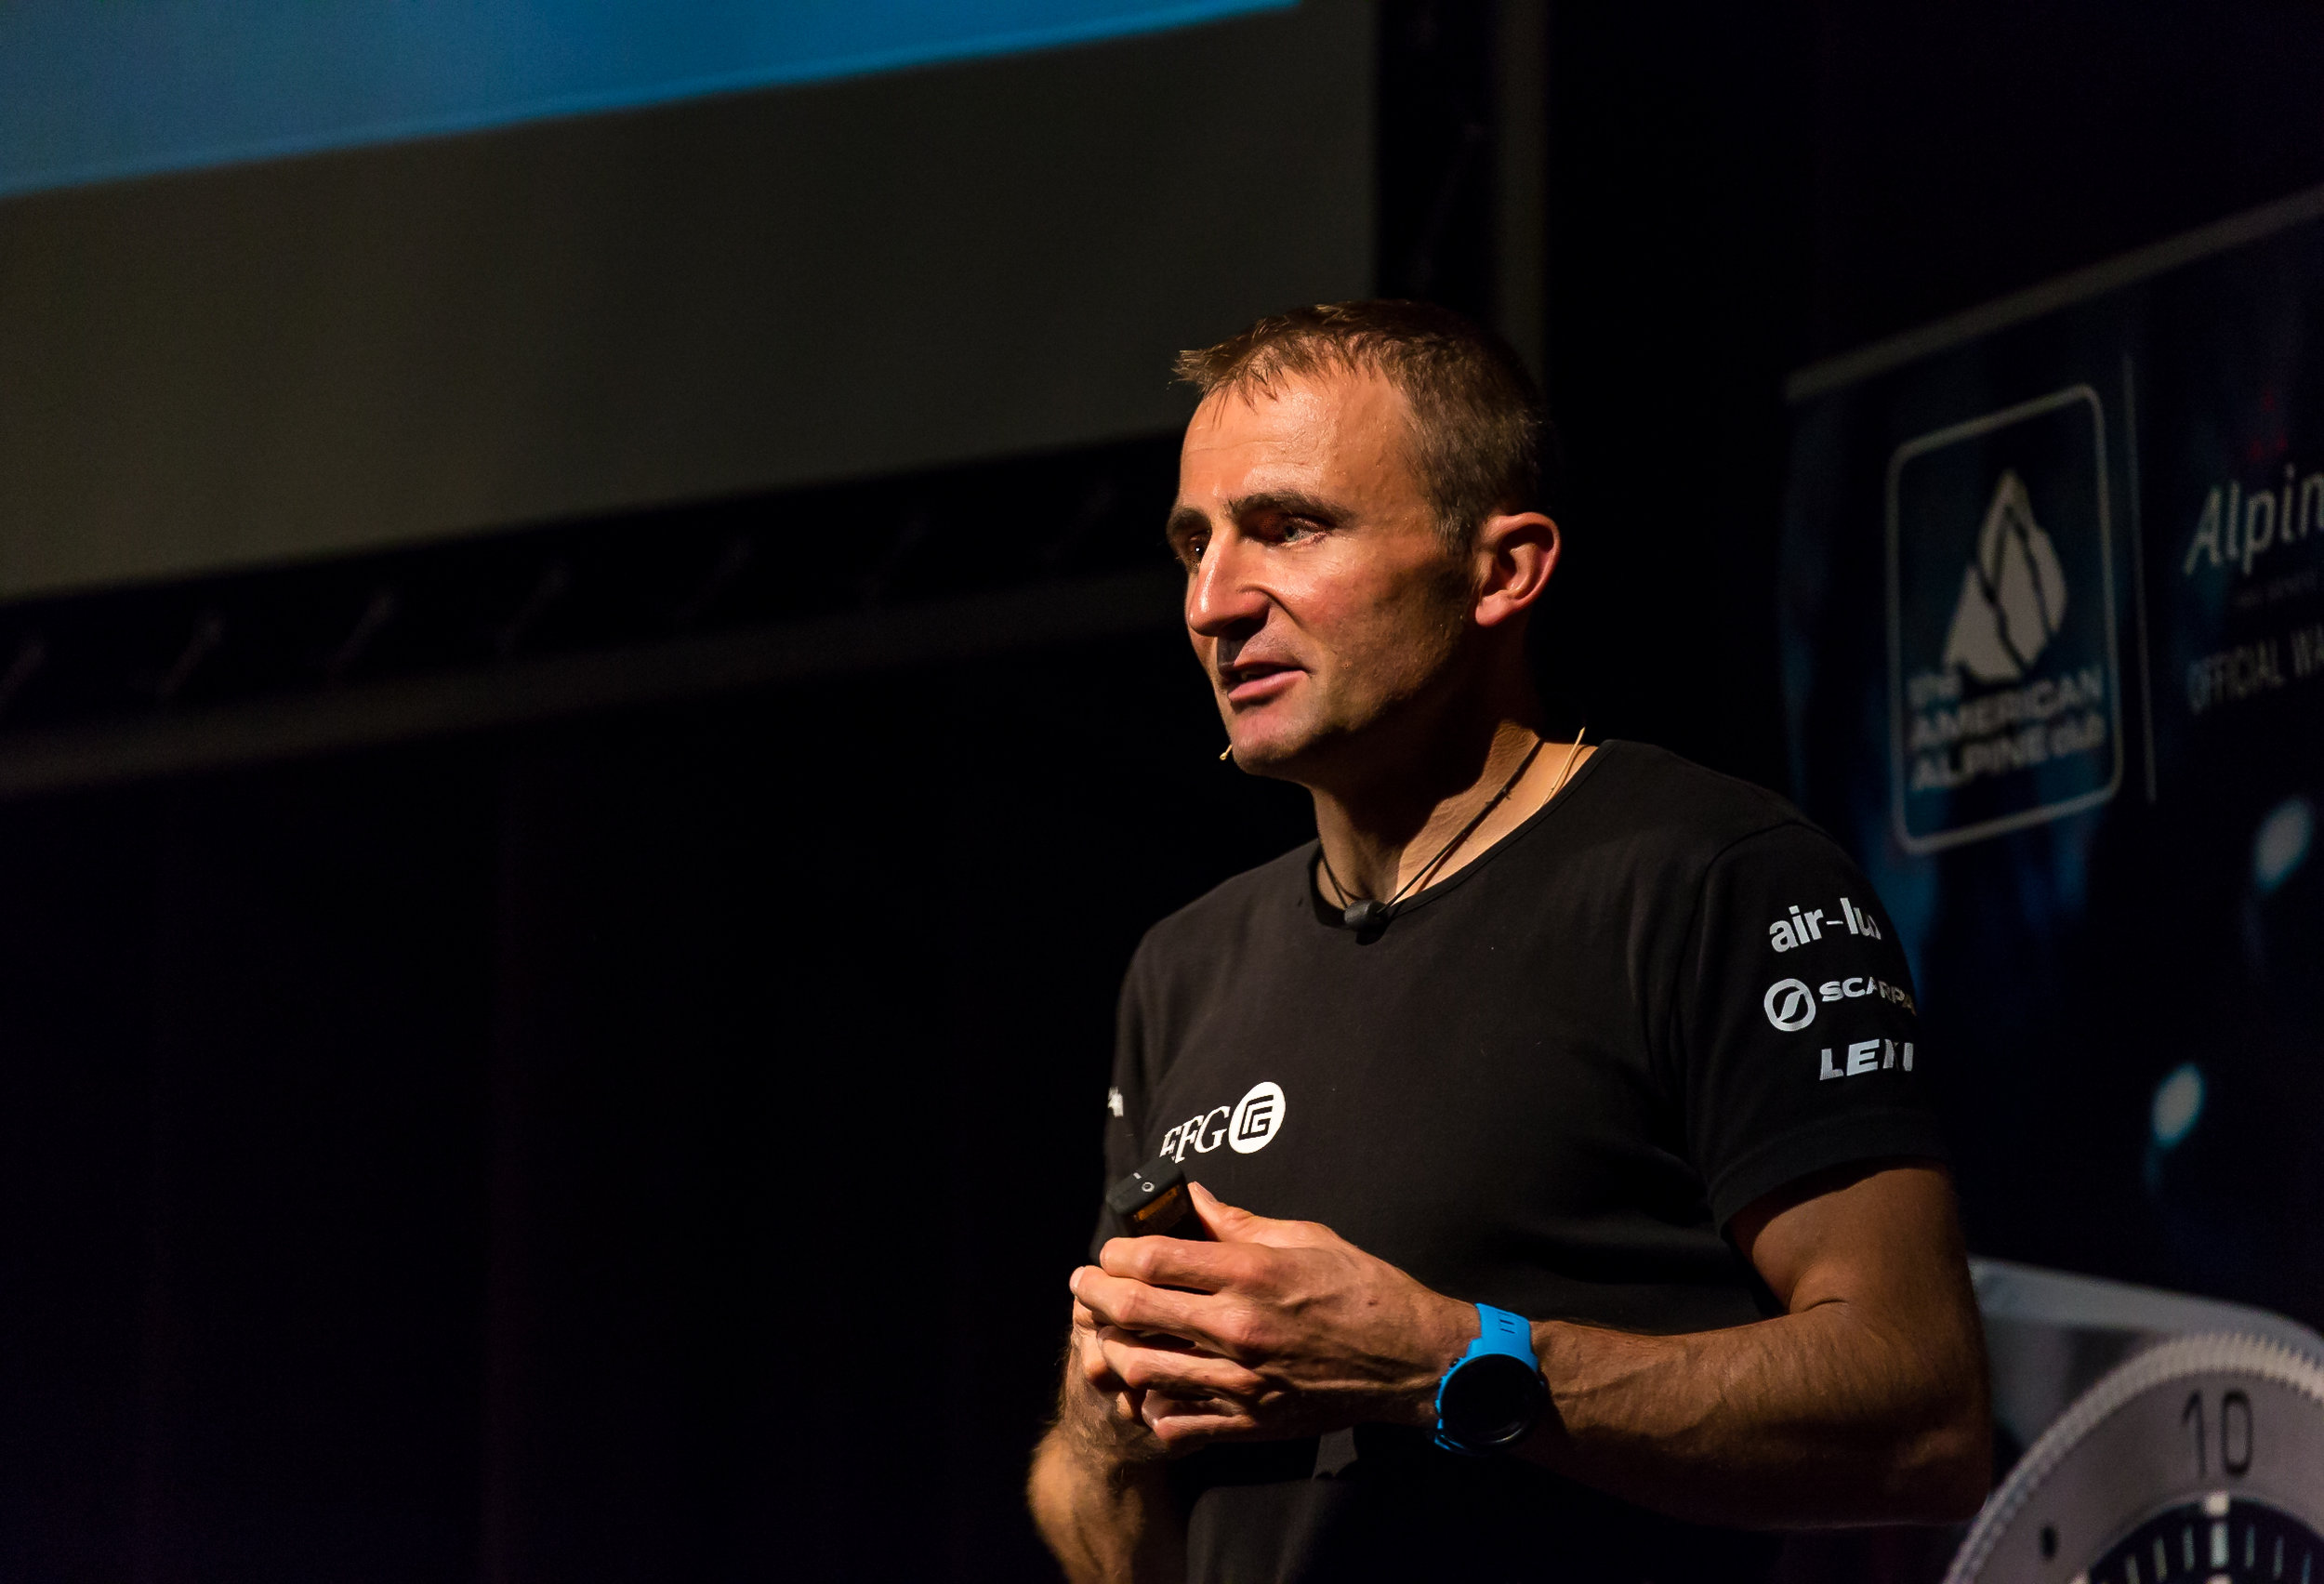 Ueli Steck speaking on the 2016 American Alpine Club's National Athlete Tour, presented by Alpina Watches. PC: Craig Hoffman